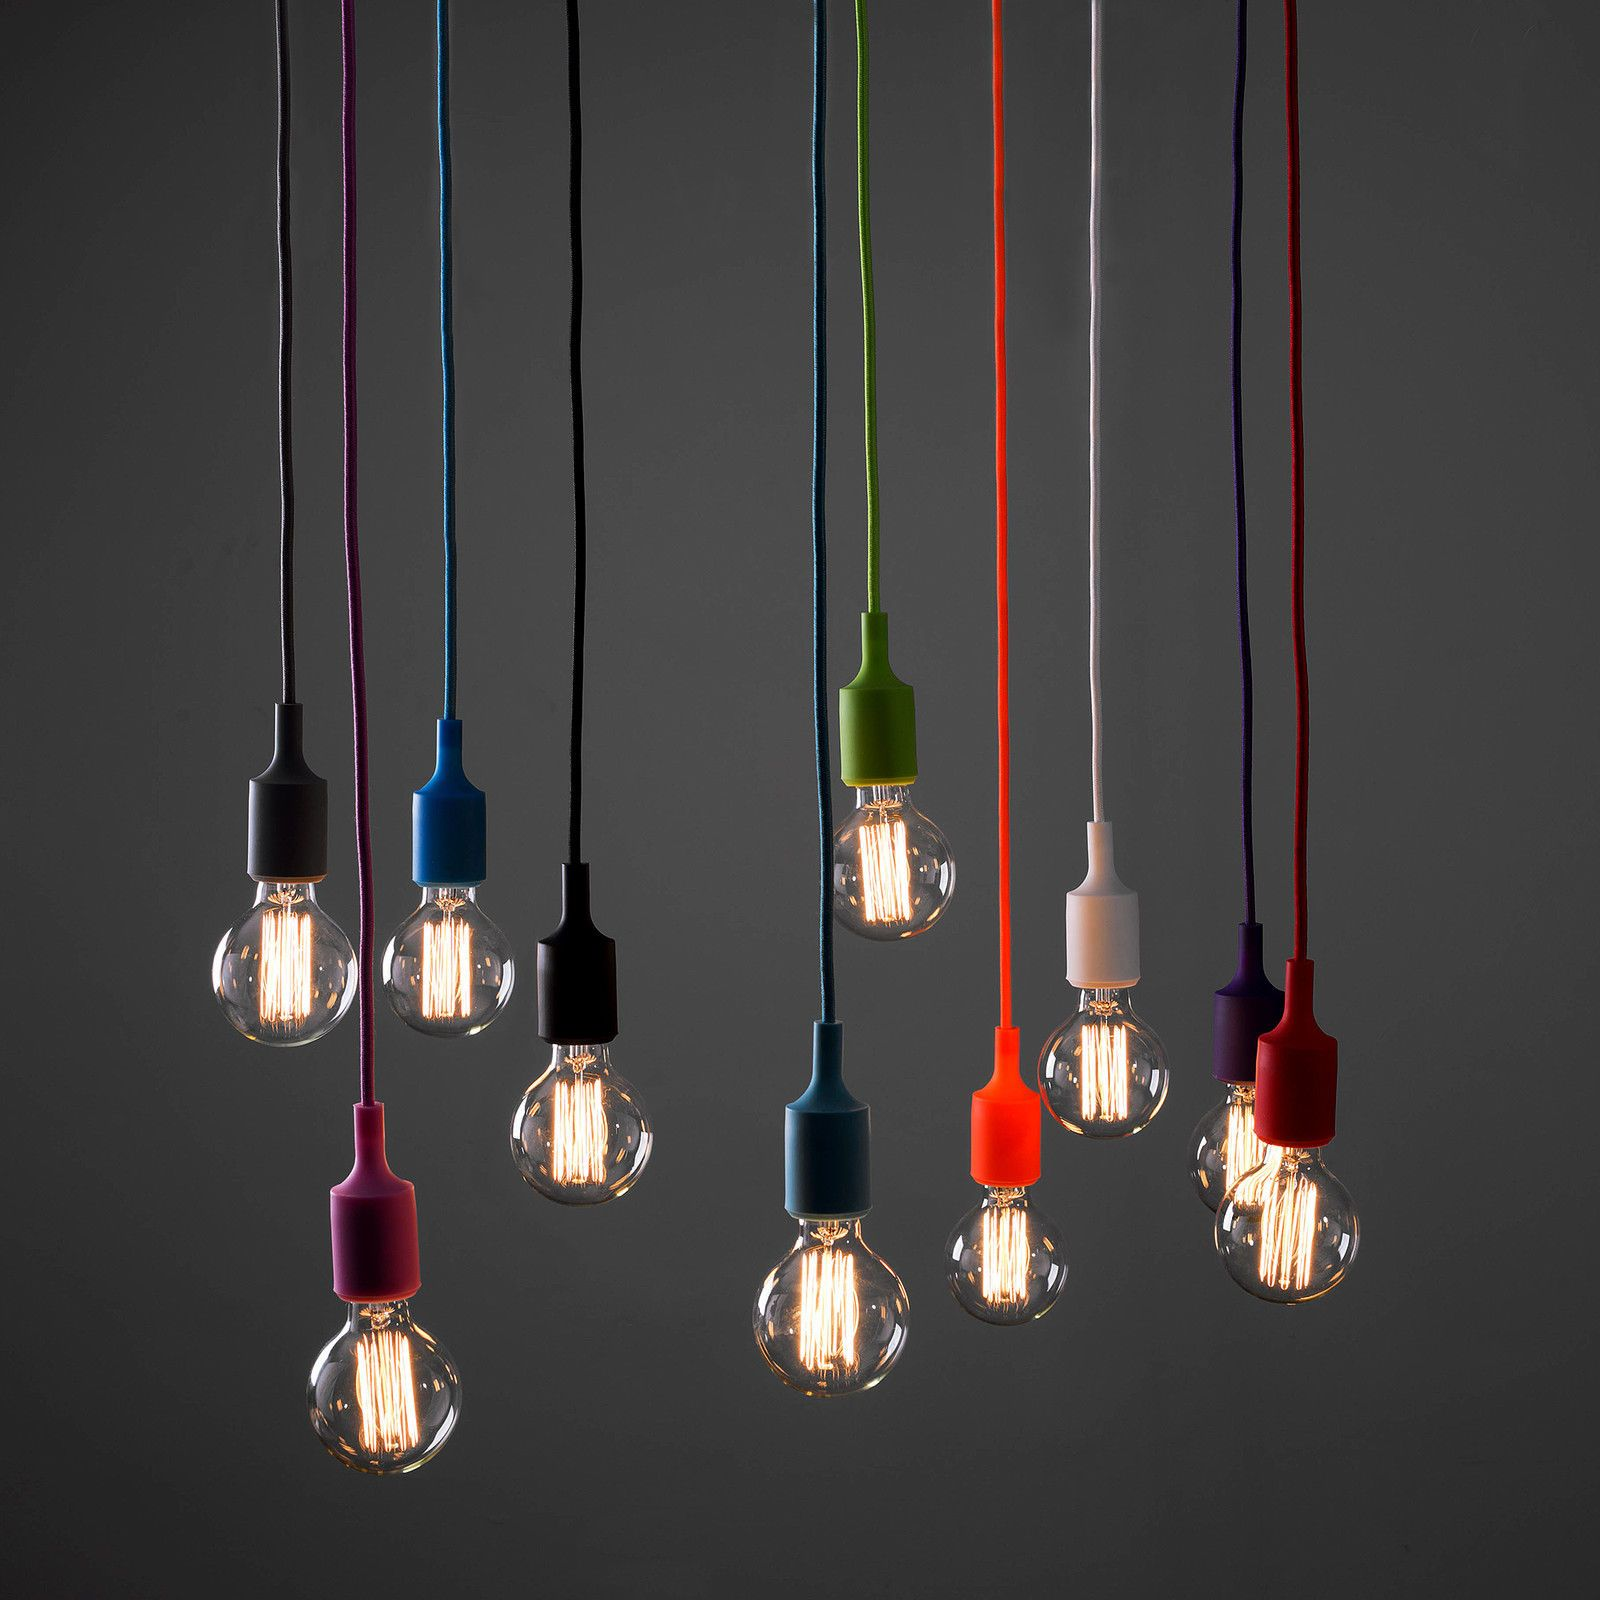 Designer style red silicone suspended ceiling light fitting designer style red silicone suspended ceiling light fitting pendant lighting ebay aloadofball Image collections